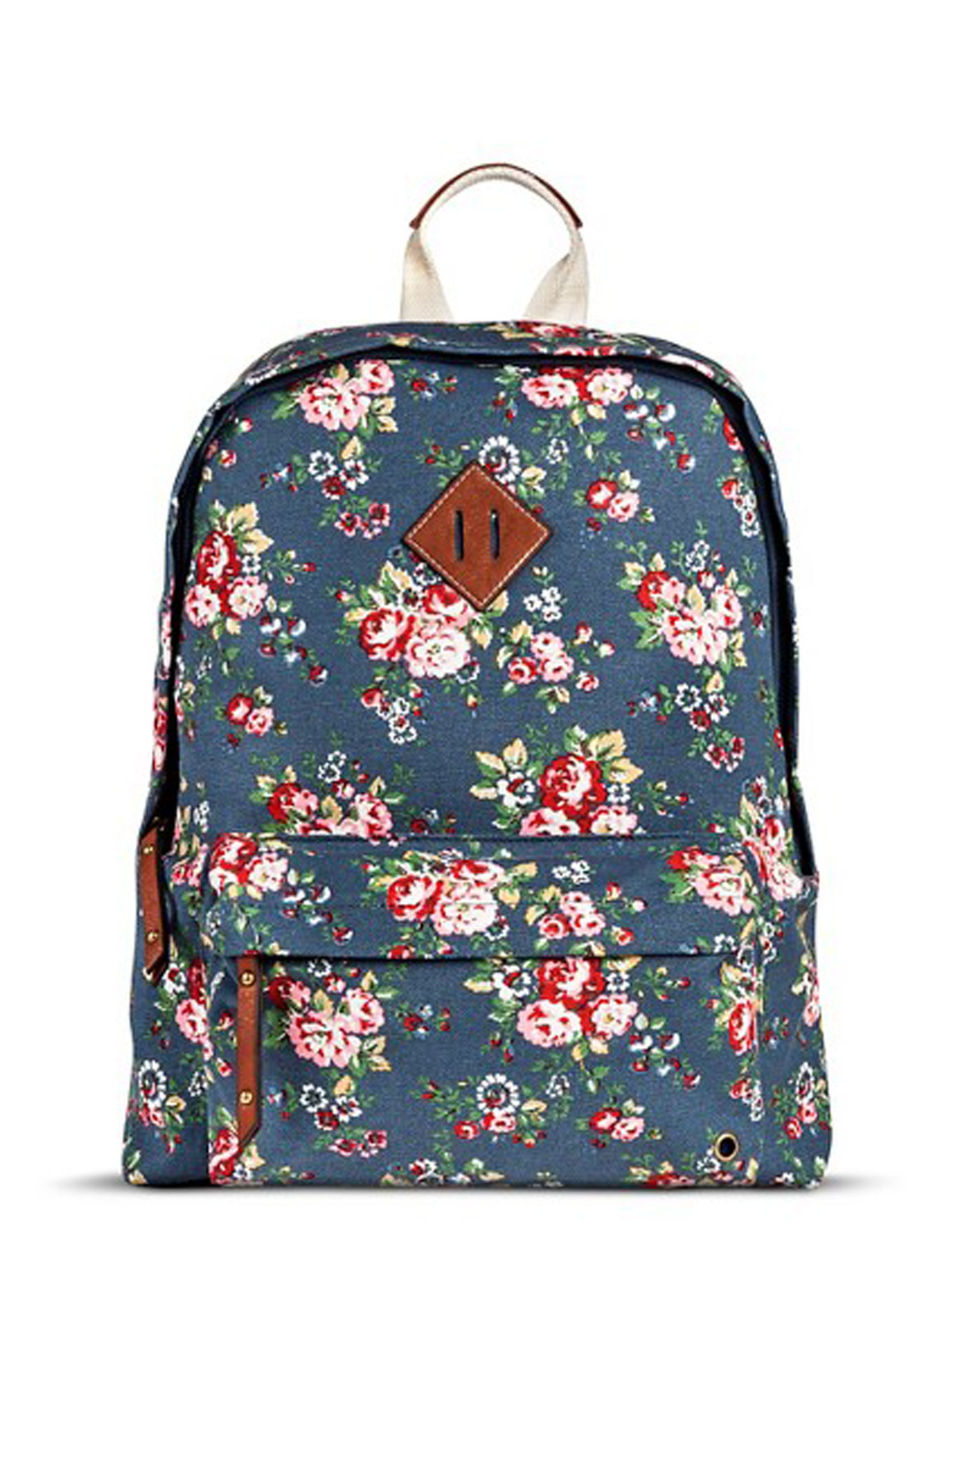 Backpacks For Teenage Girl kfzmdWKG